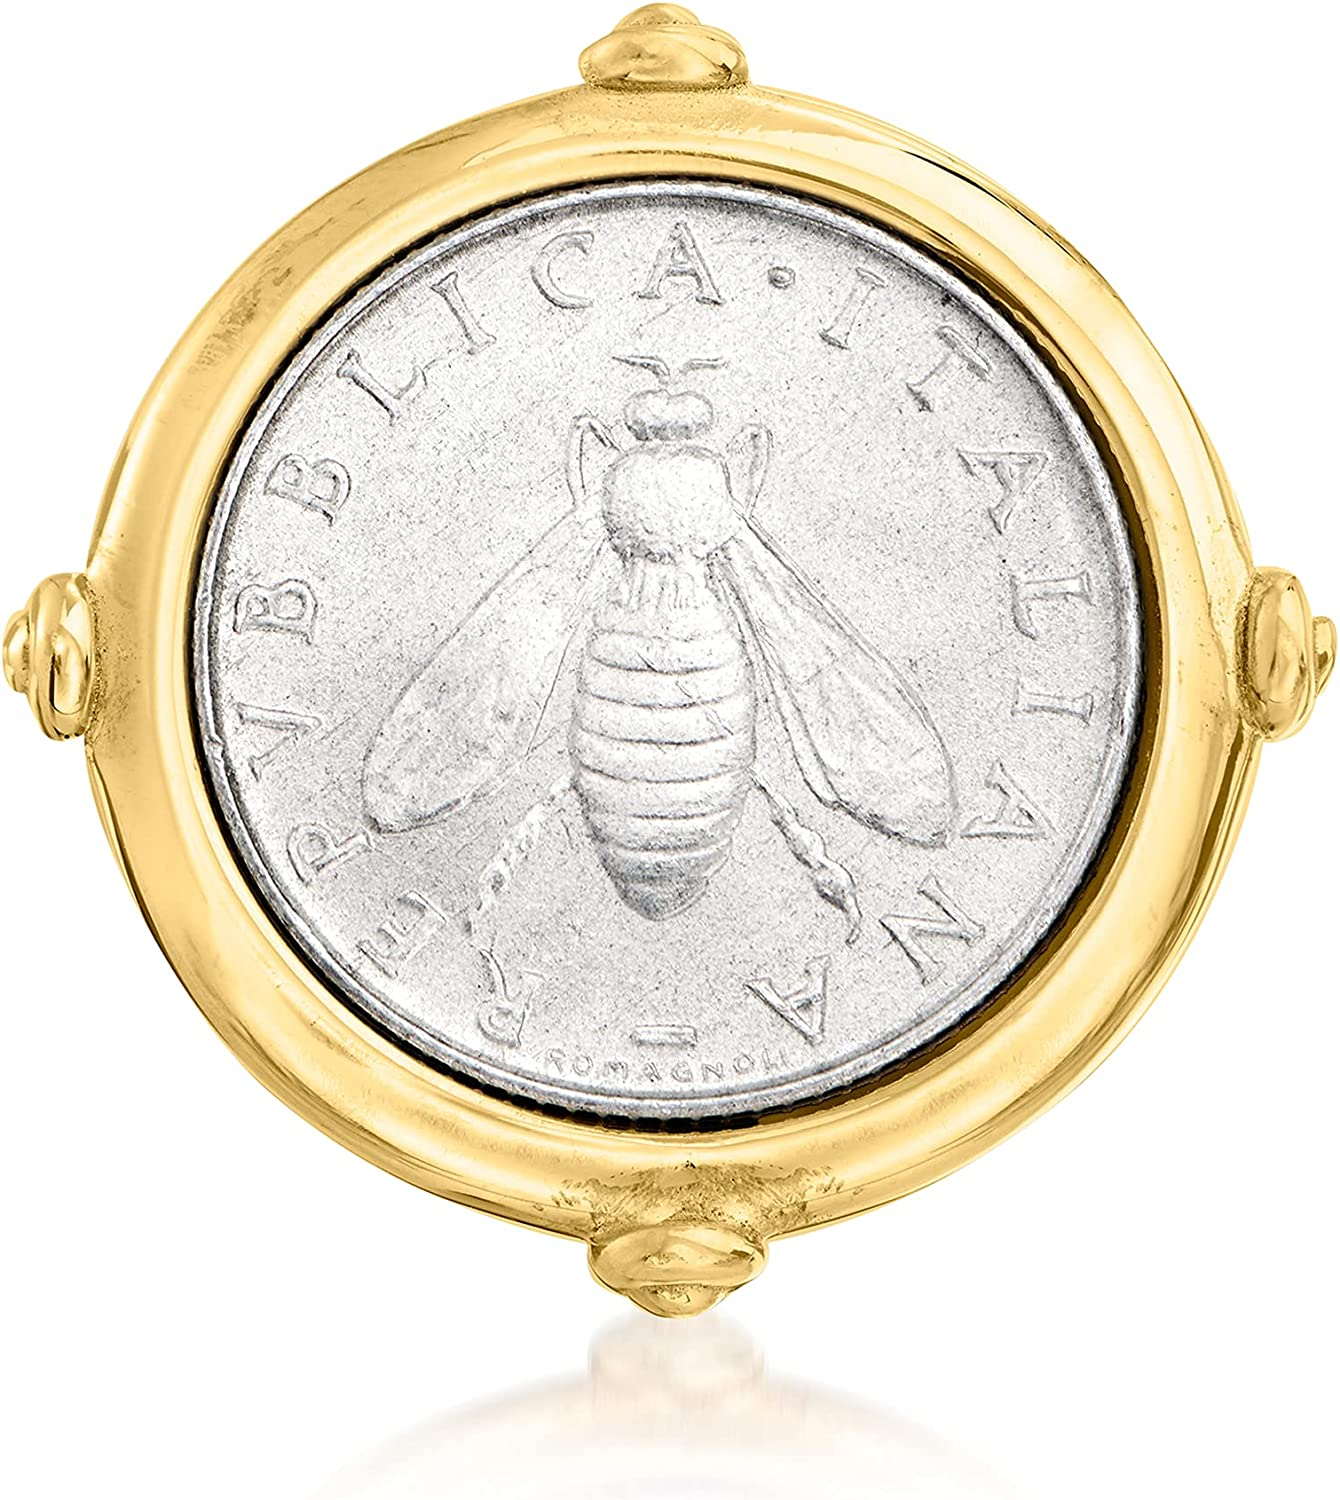 Ross-Simons shopping Italian 18kt Gold Over Ring Sterling Coin 2-Lira Max 48% OFF Bee